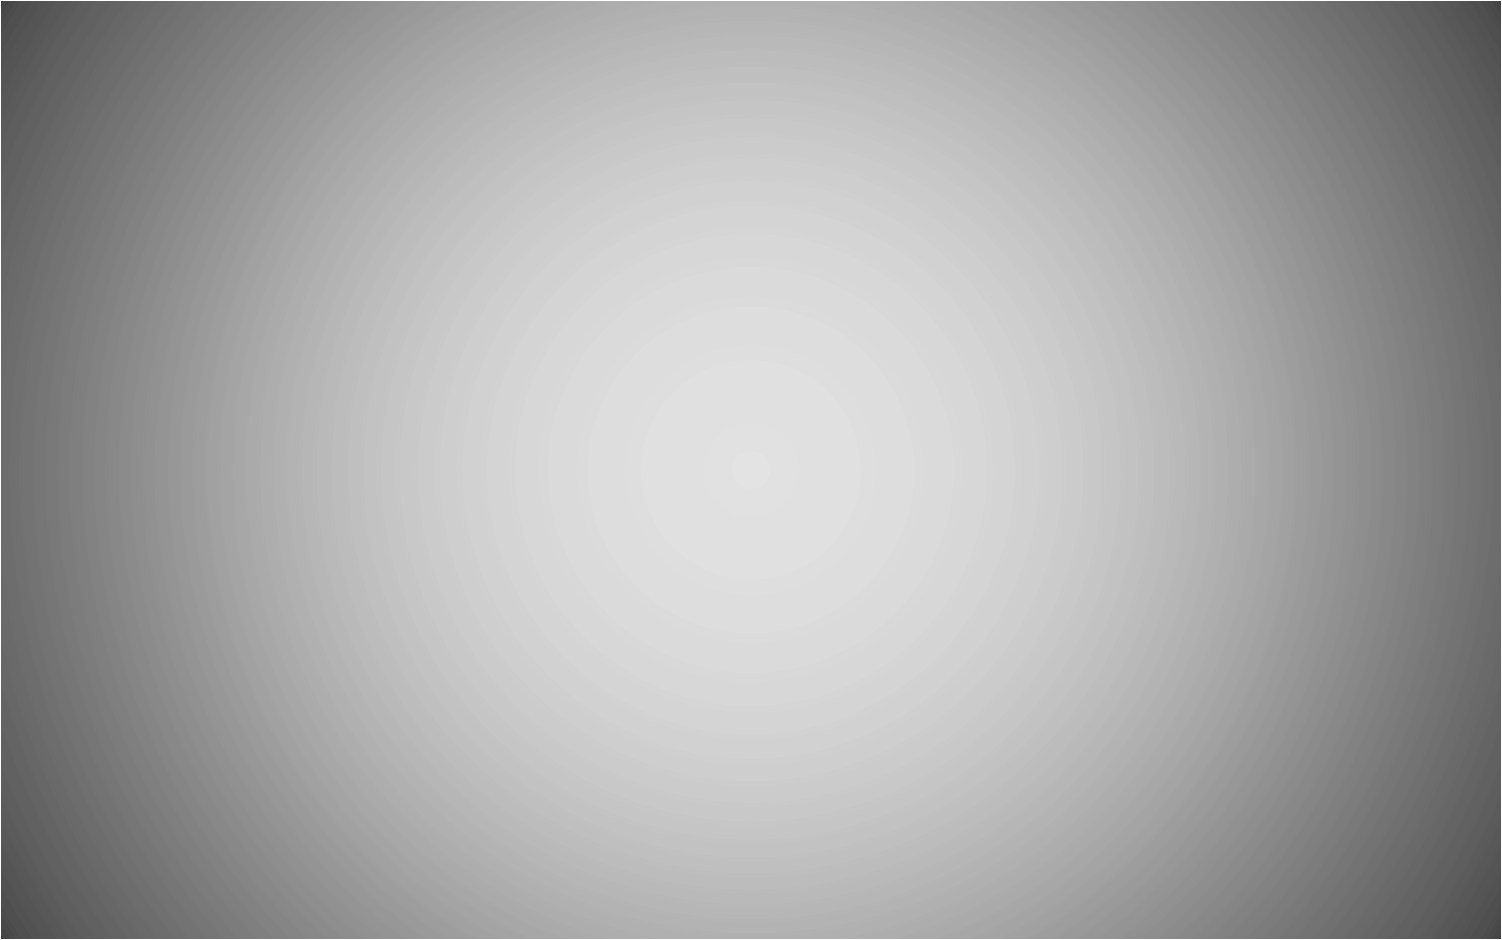 Blur png overlay. Emprende pe posted by